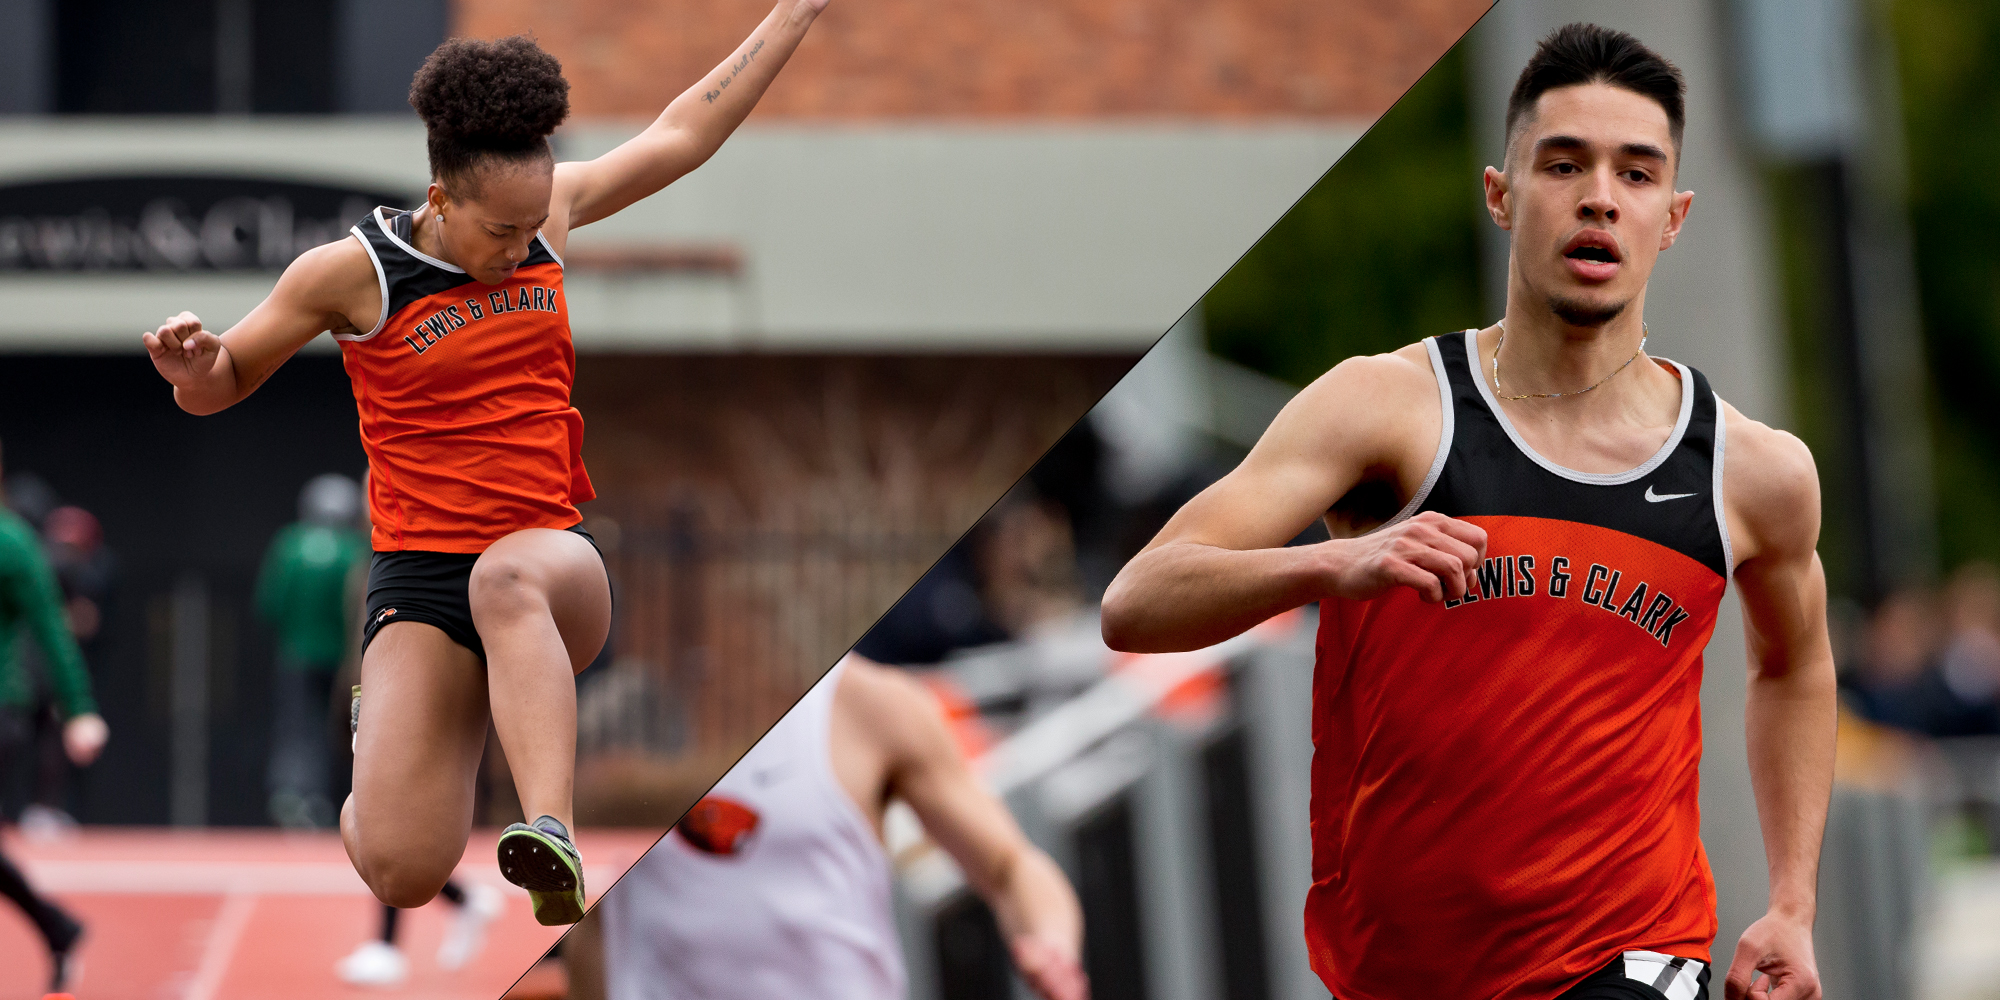 Pios Set 16 PRs at the L&C Invitational